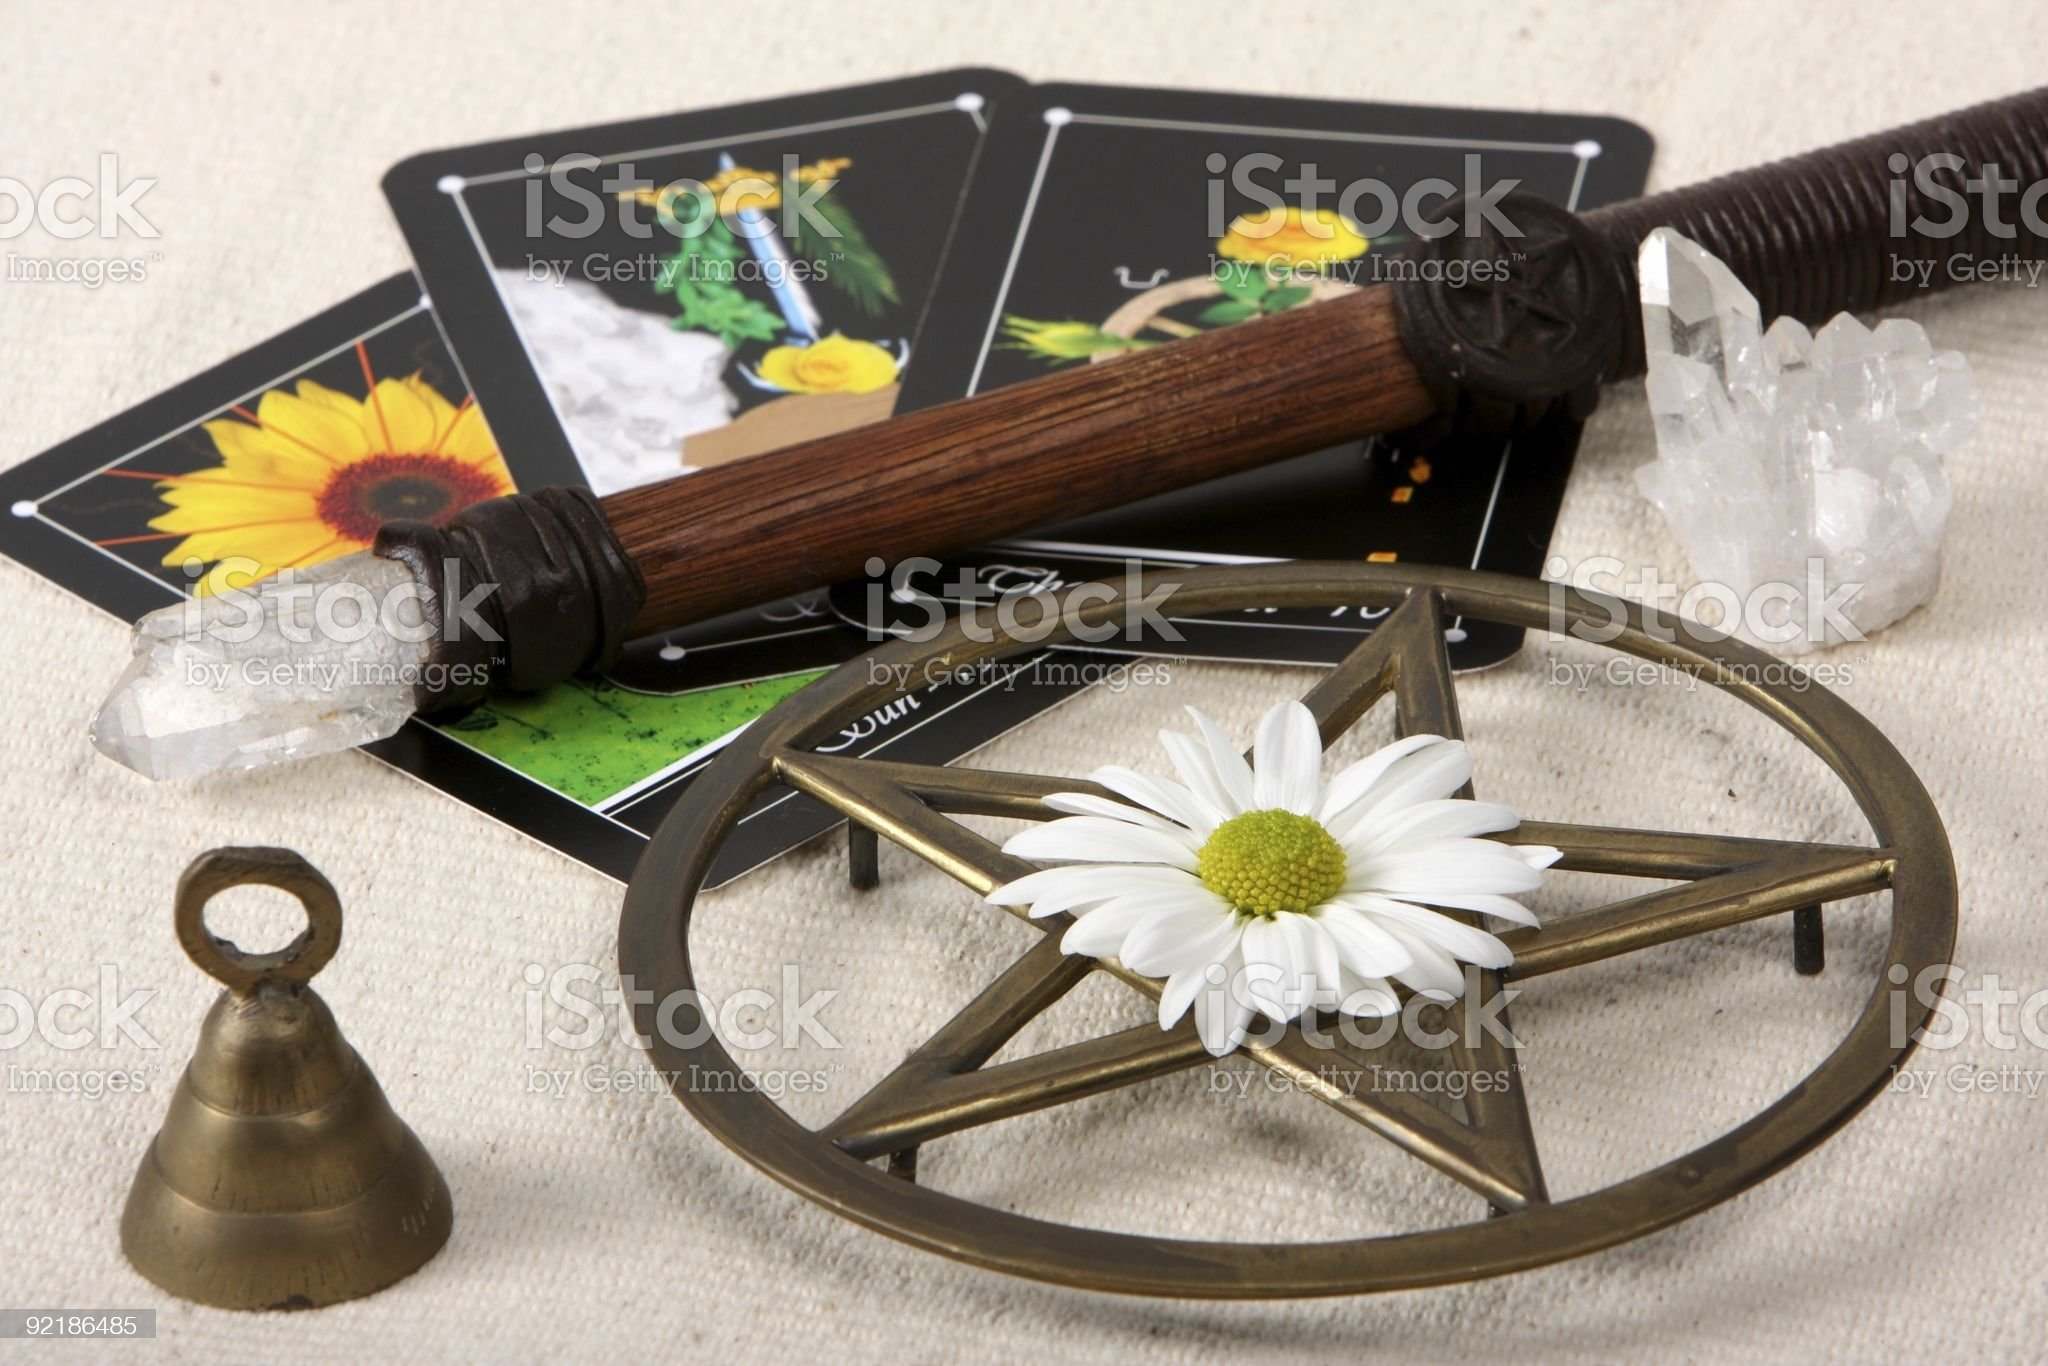 Wiccan Objects And Tarot Cards royalty-free stock photo